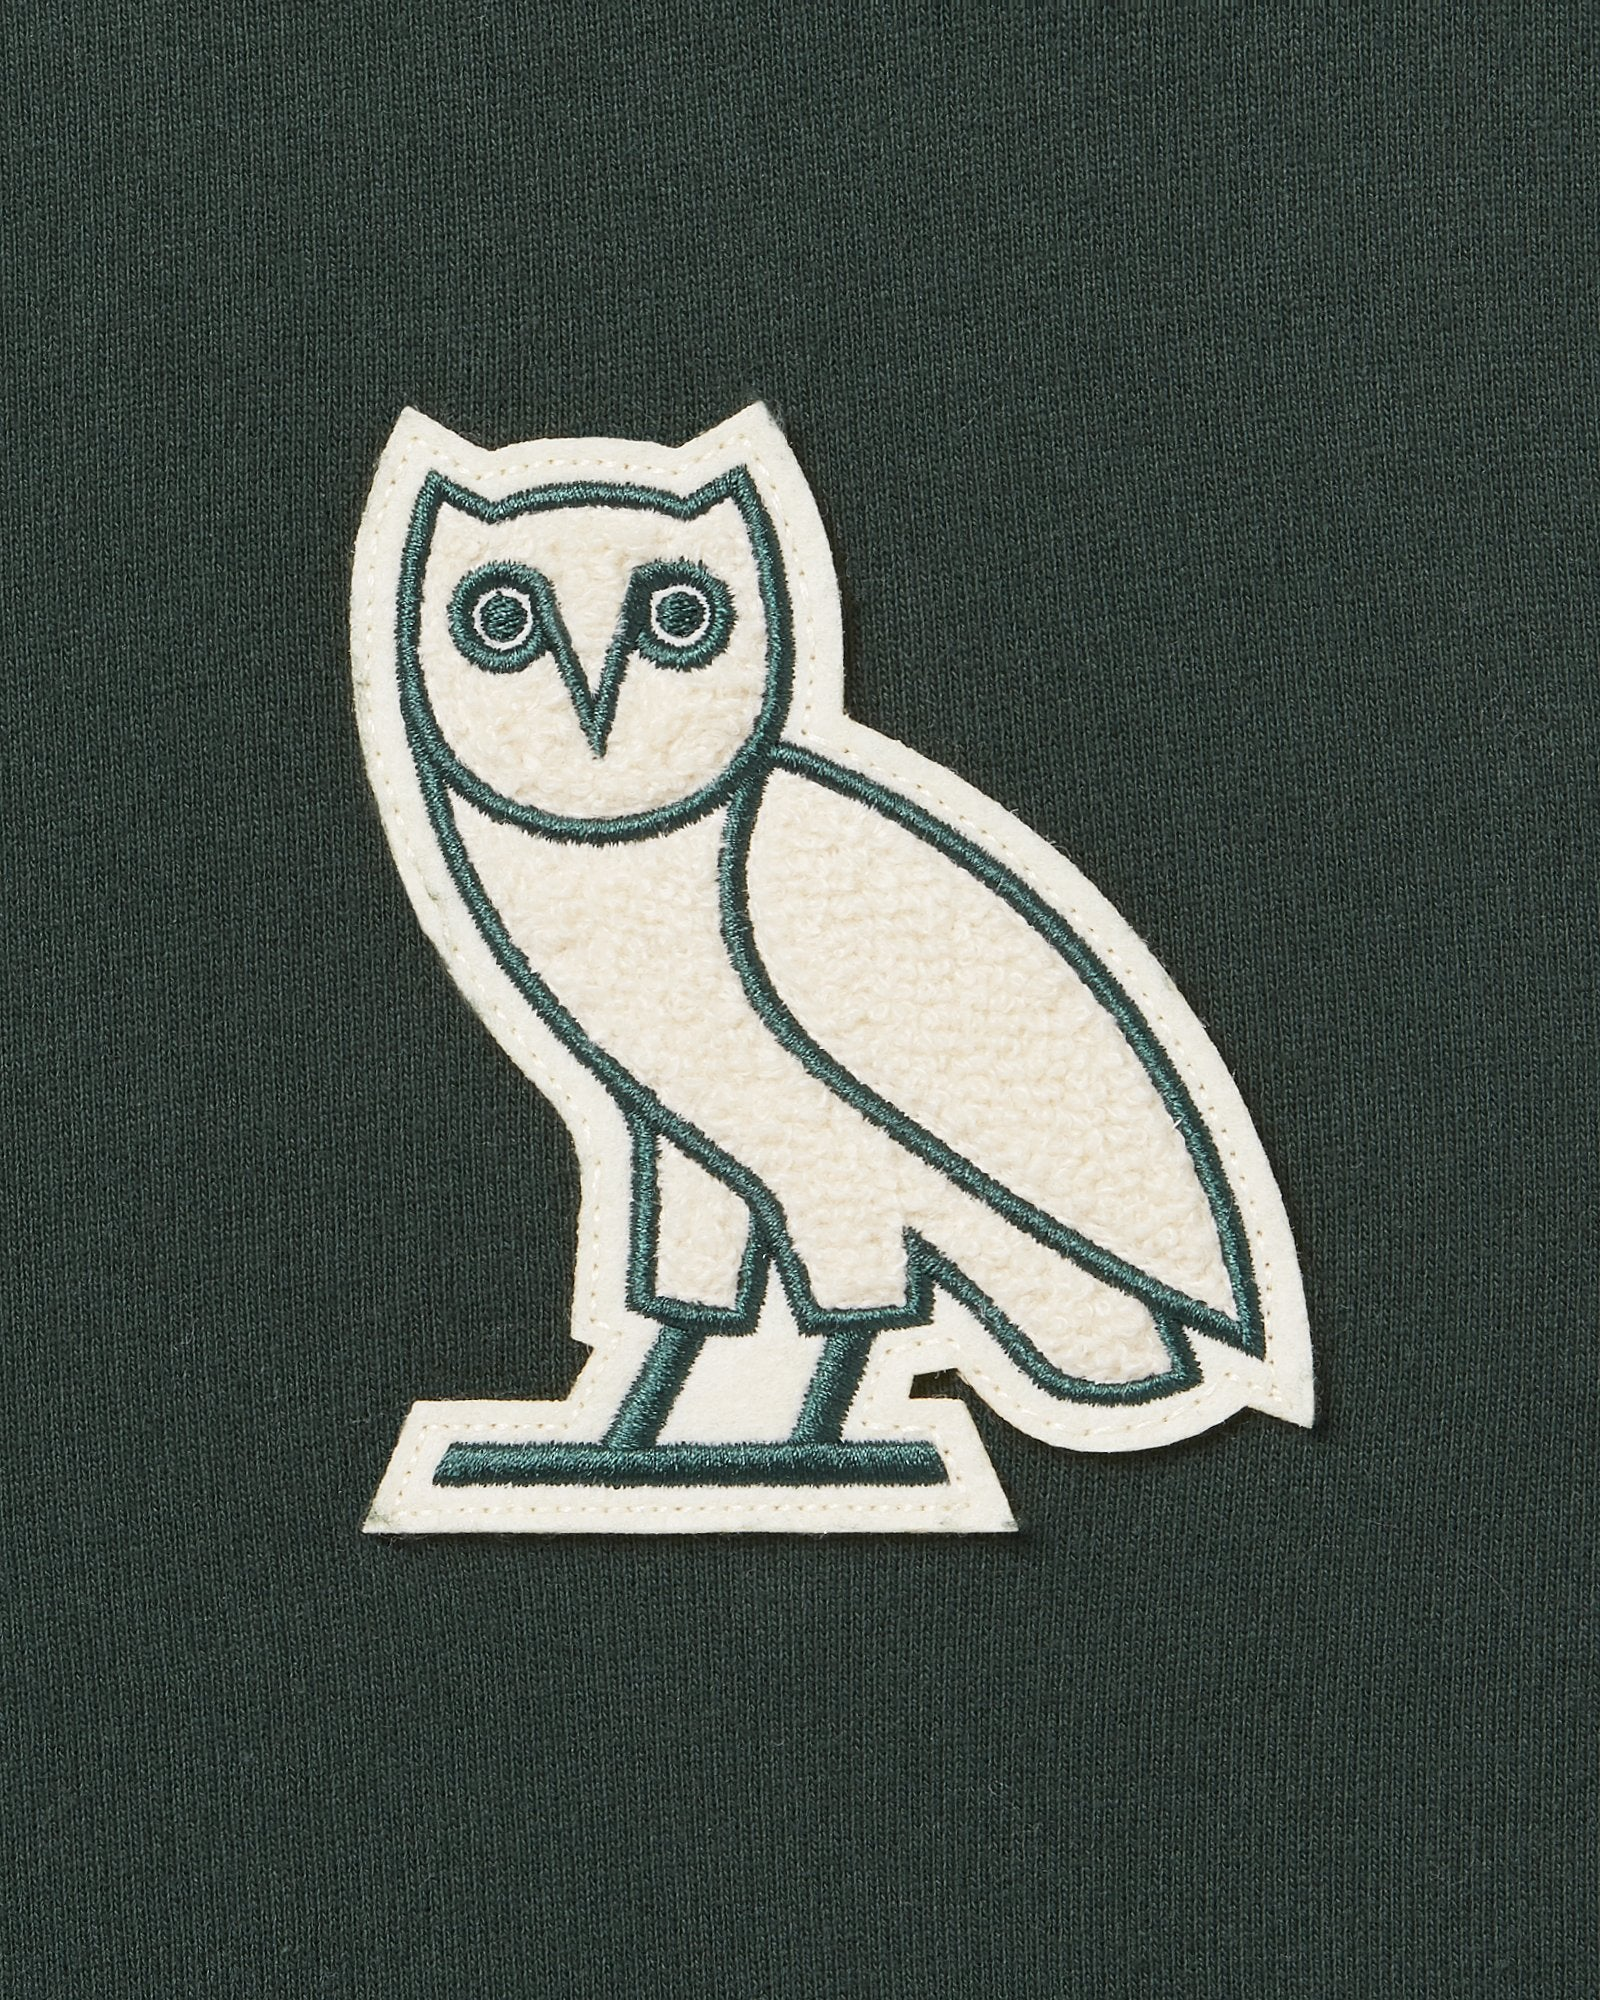 CLASSIC OWL HOODIE - EVERGREEN IMAGE #3